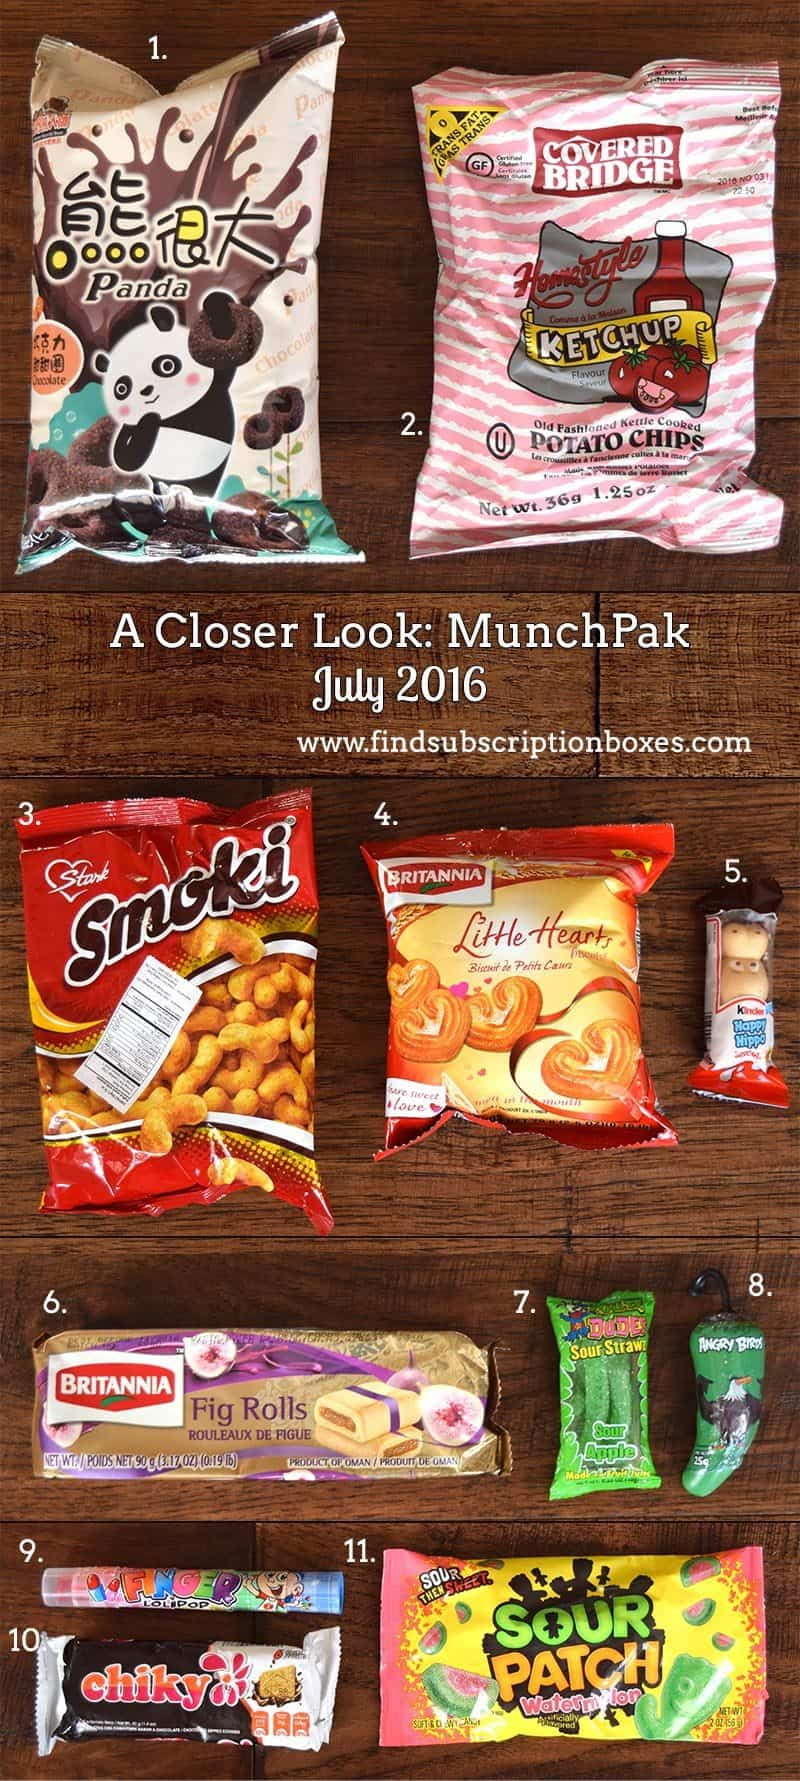 July 2016 MunchPak Review - Inside the Box